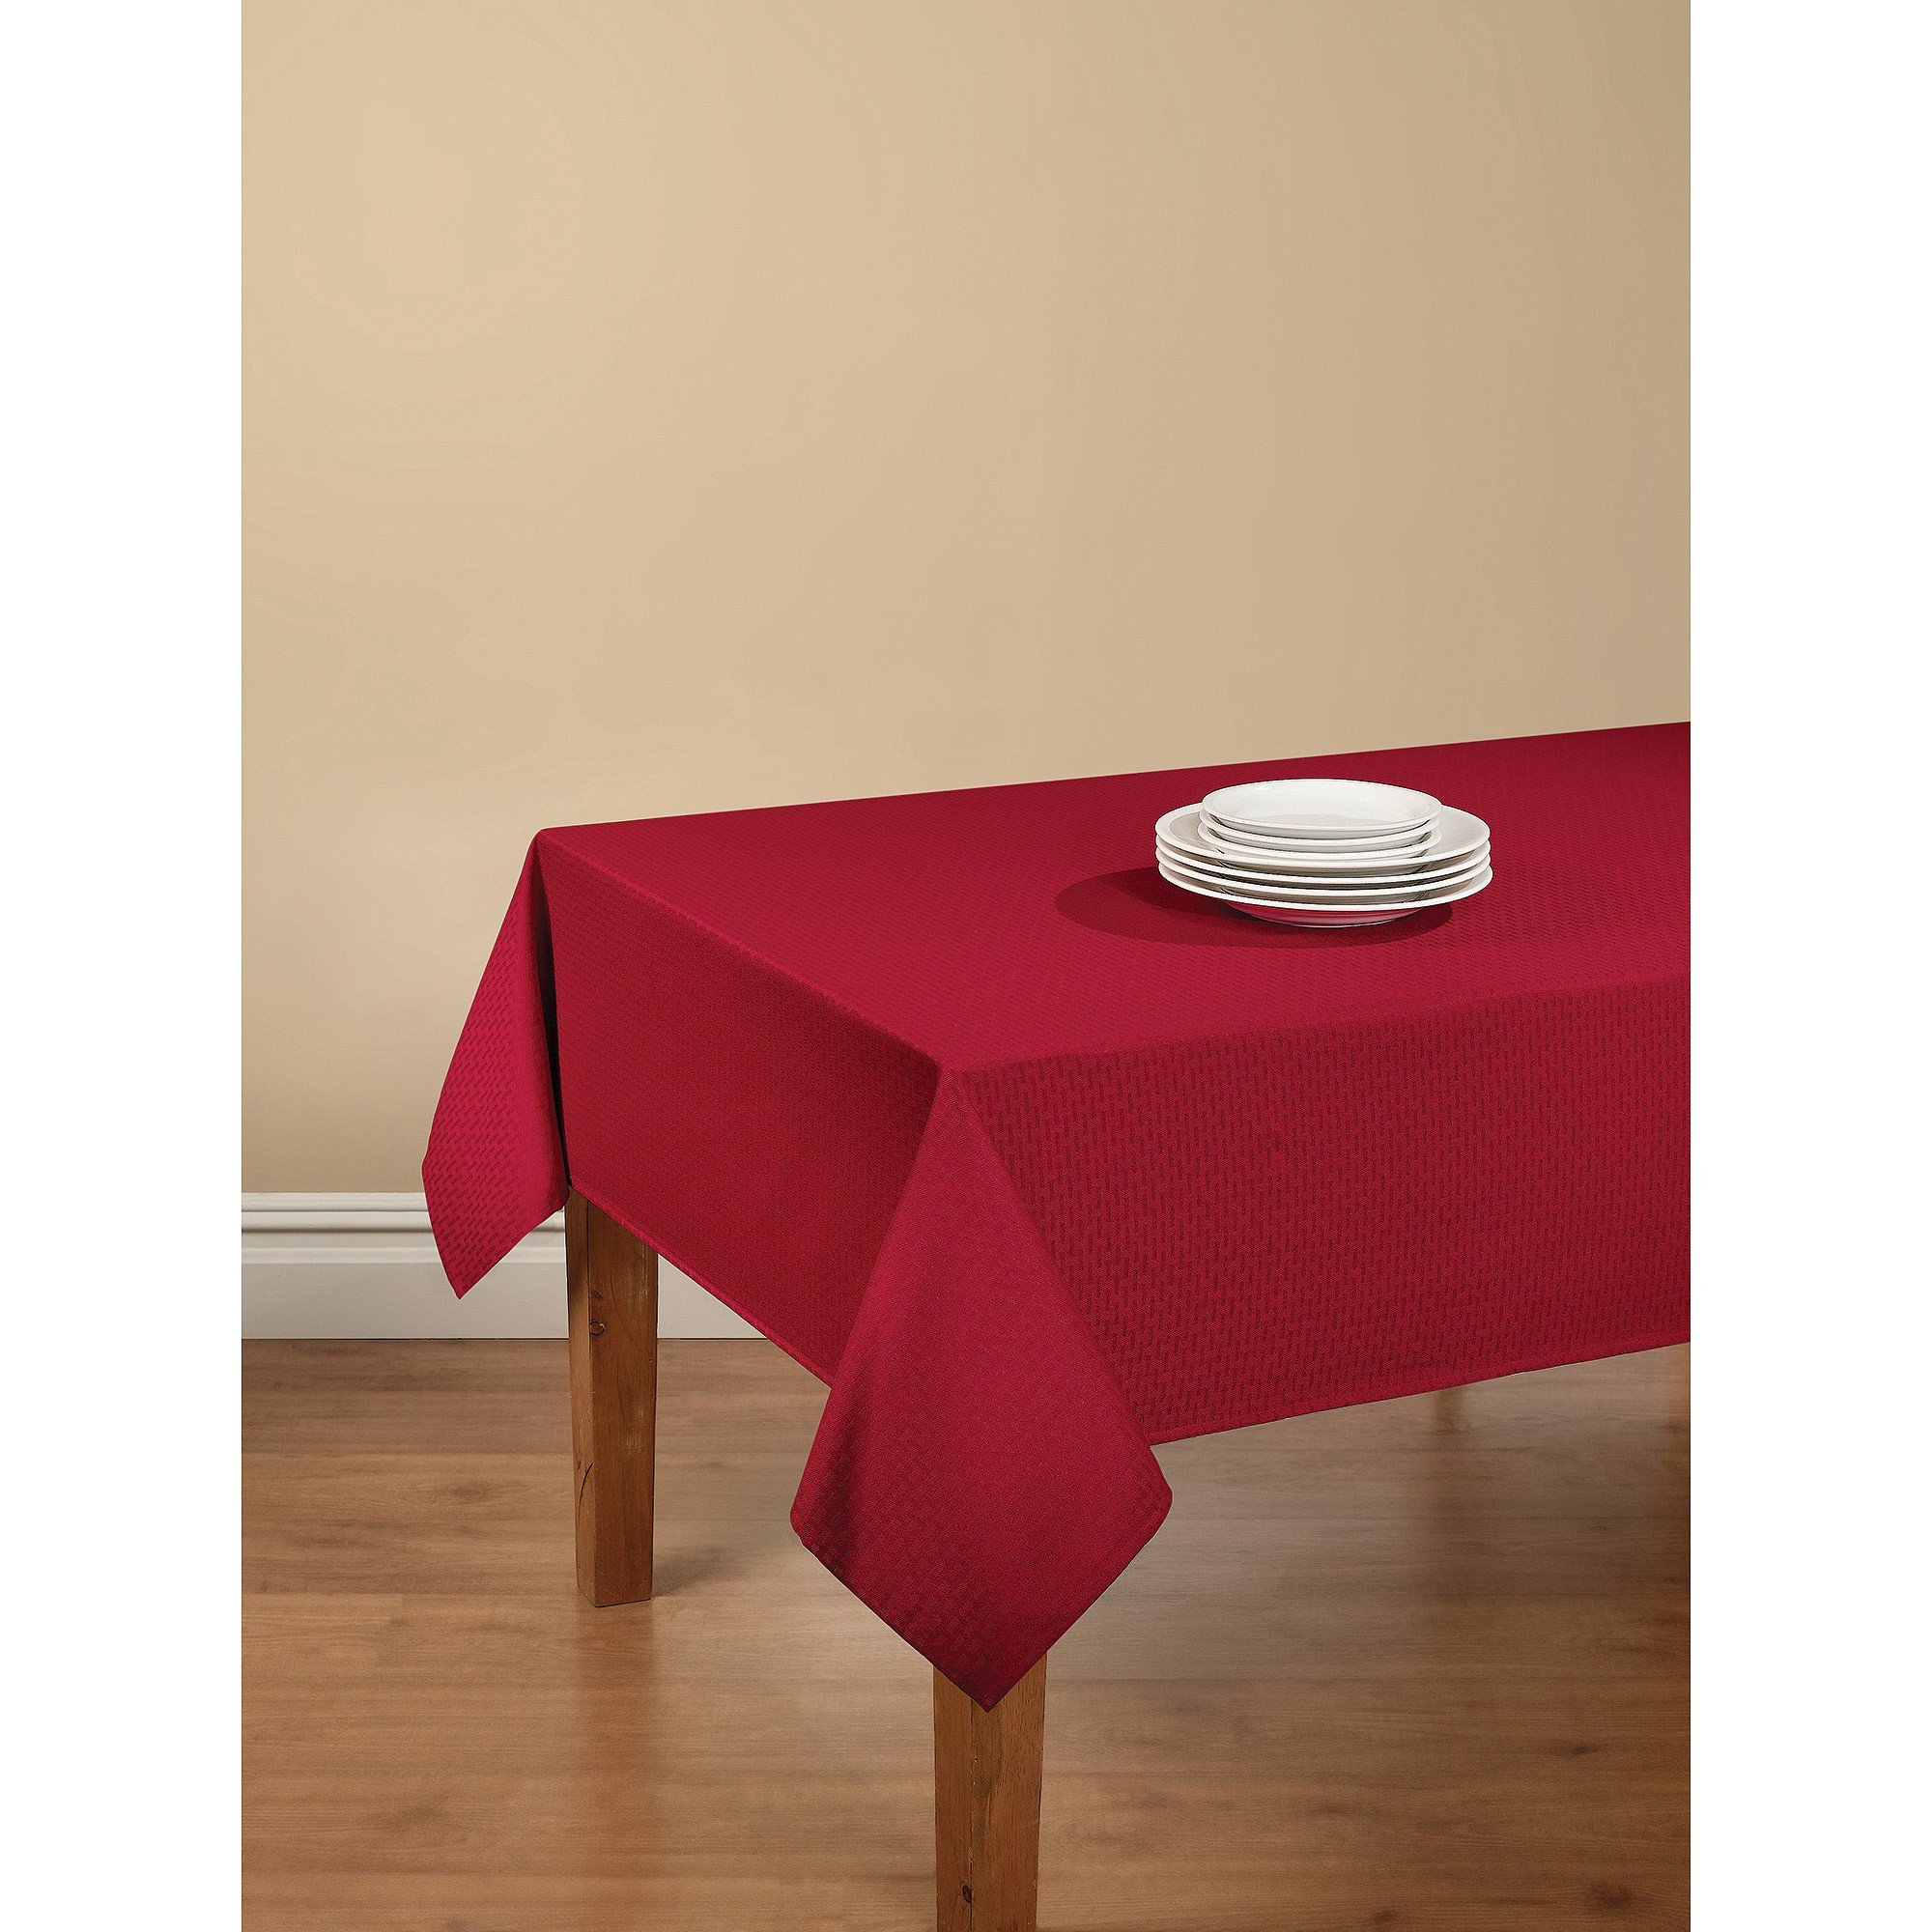 mainstays hyde fabric tablecloth red round accent antique serving table outdoor dining set cover modern furniture purple battery standard lamp carpet tile trim strips operated led